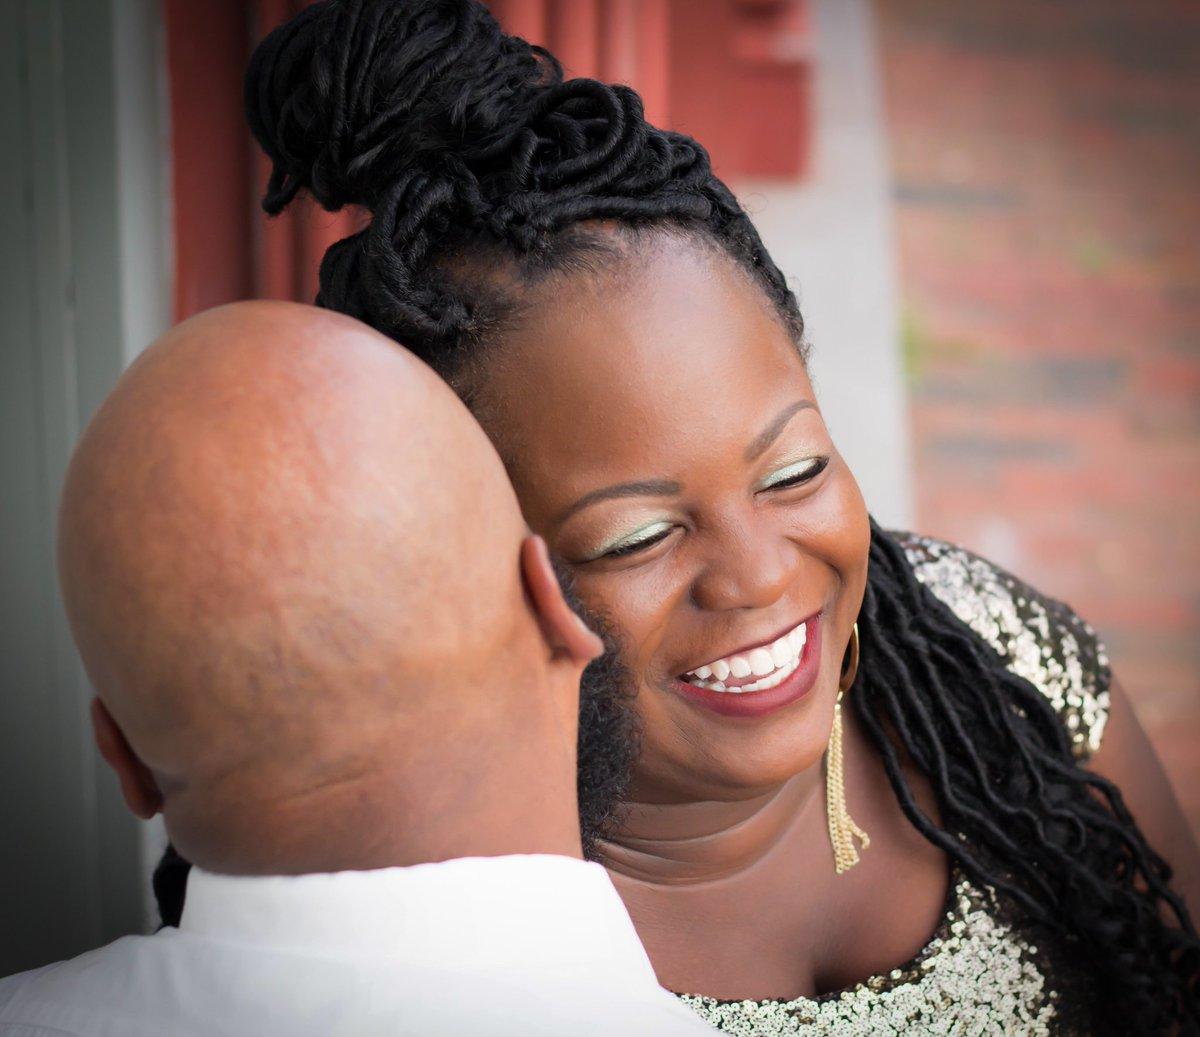 Y'all So Cute....One Of Our Favorite Couples... Distinct Eye Photography #Magic #BlackLove Here's  all the magic we captured from your session   @distincteyephotograpy  #familysessions #studio #familyphoto #birthdayphotoshoot   #photographer #videographer   #femalephotographerpic.twitter.com/dtM641b3hv